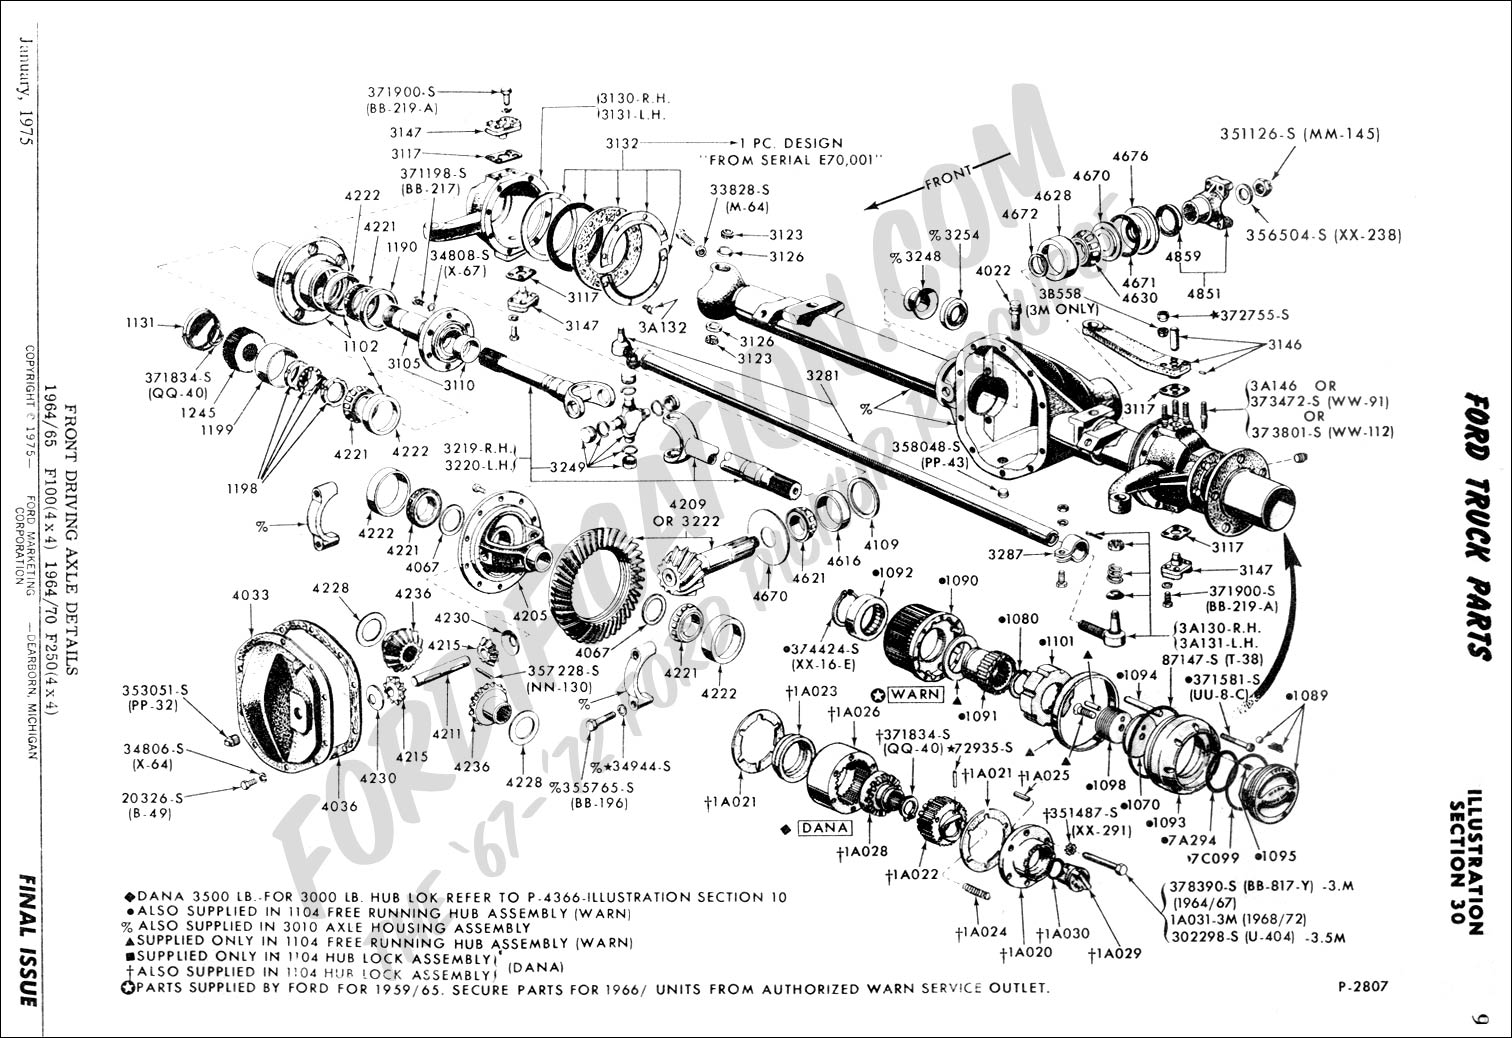 Schematics a likewise 598426 C230 2003 Coupe Panoramic Sunroof Question furthermore Catalog3 additionally Kenworth T300 Engine Wiring Diagram also Simplicity 12 Rtg 36 Mower Deck Belt Diagram. on ford parts catalog with diagrams